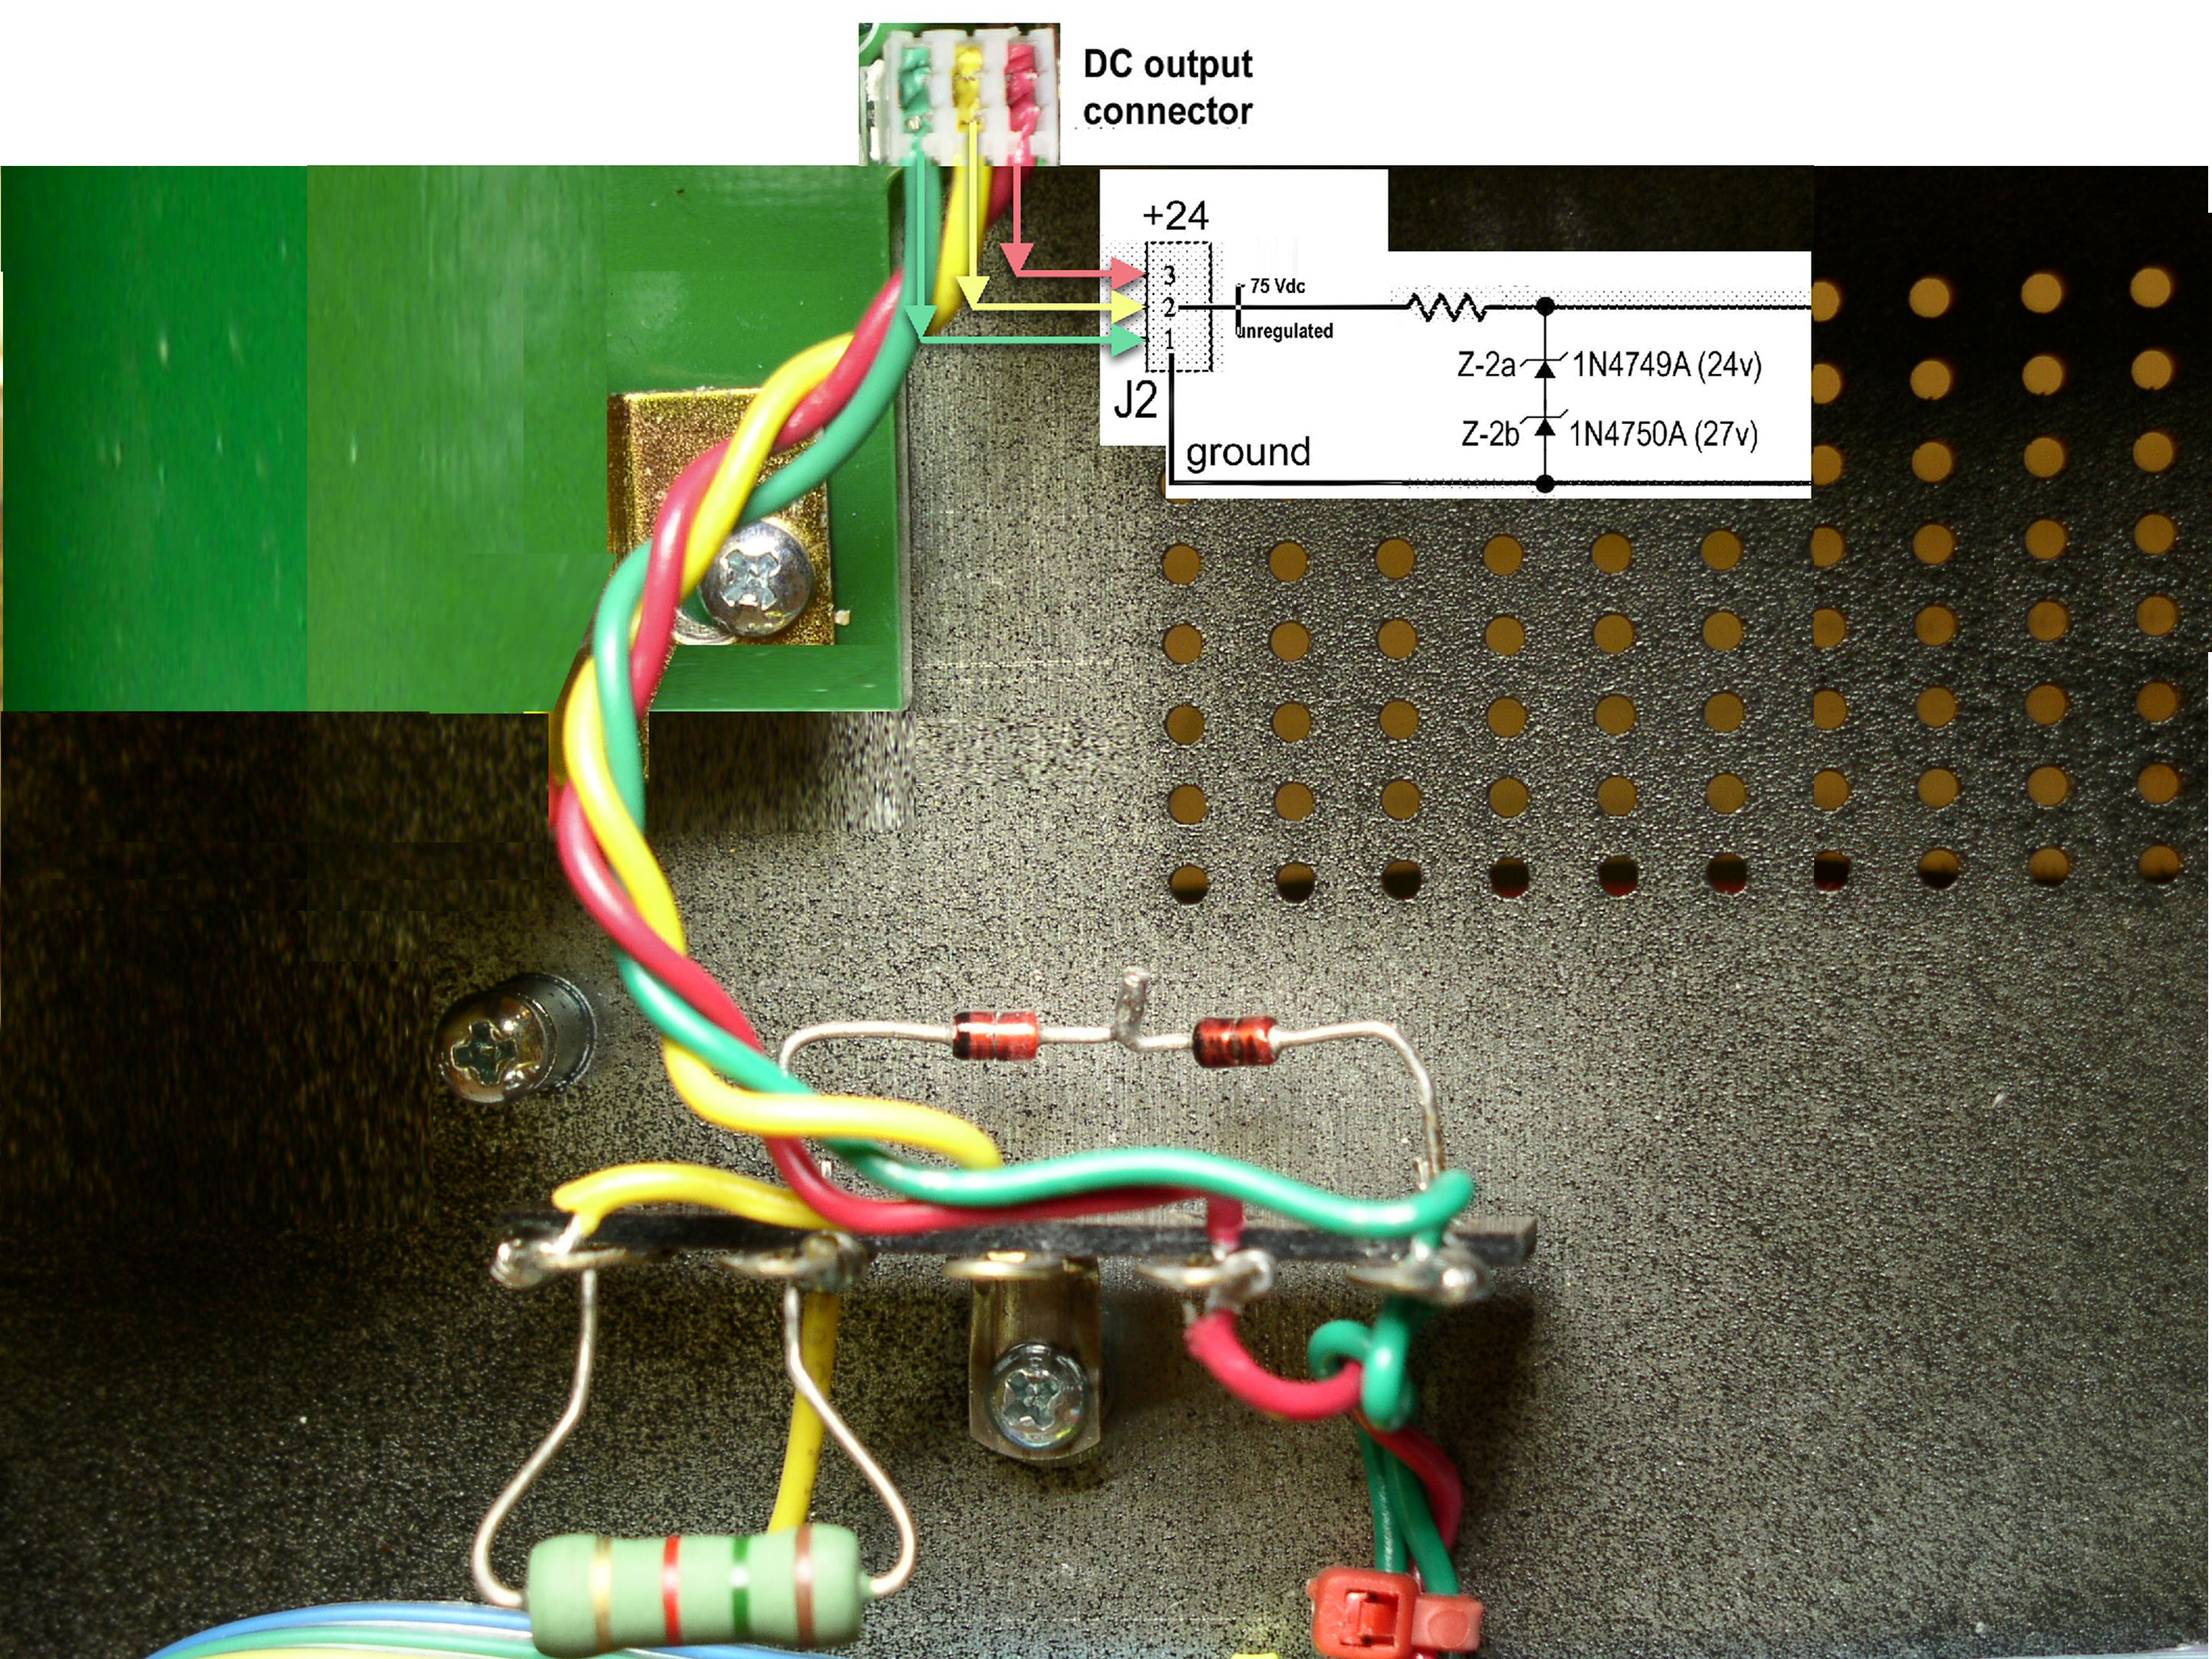 front panel switch wiring: 20db pad, phantom power switch (not visible,  input impedance / 6db switch